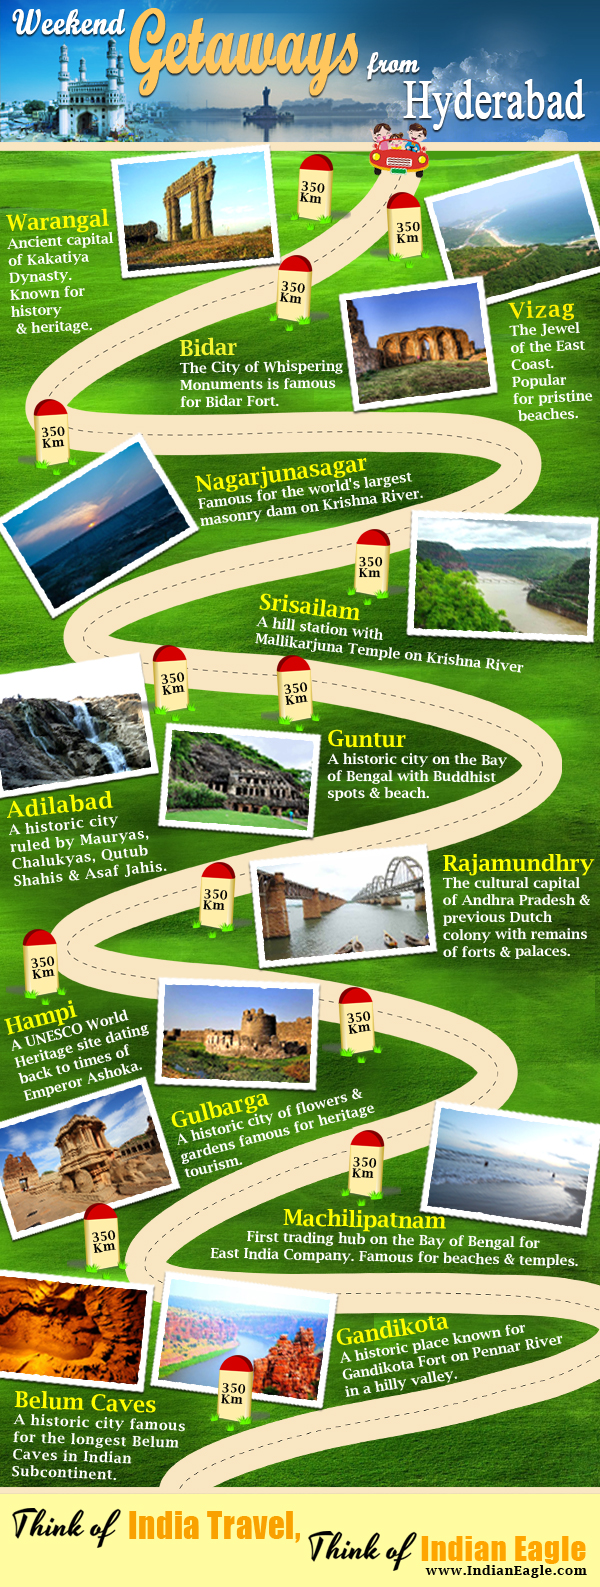 Hyderabad, weekend getaways, travel ideas, weekend trips, weekend vacation ideas, travel infographics, IndianEagle travel